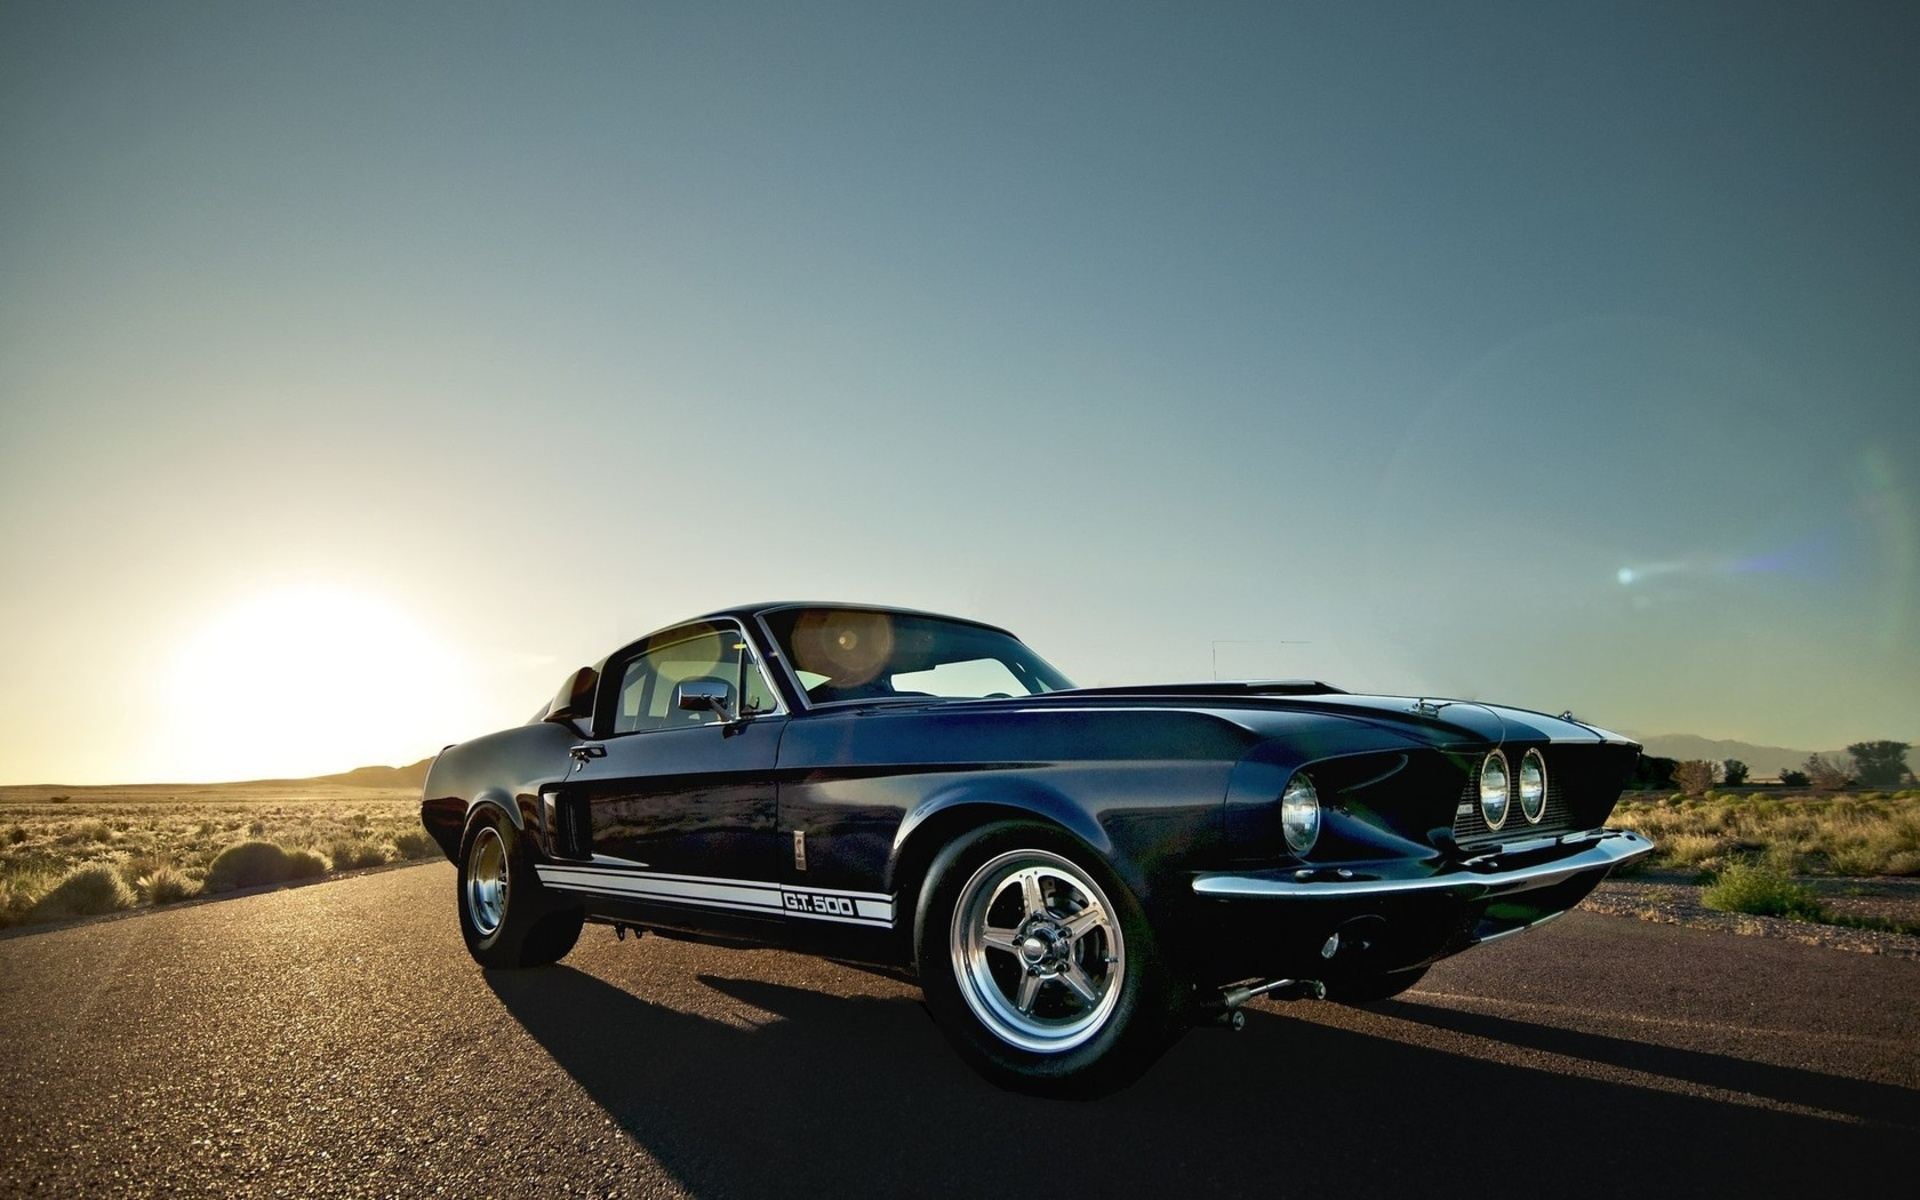 vehicles cars fords mustamgs hot rods muscle cars classic cars wallpaper 1920x1200 22822 wallpaperup